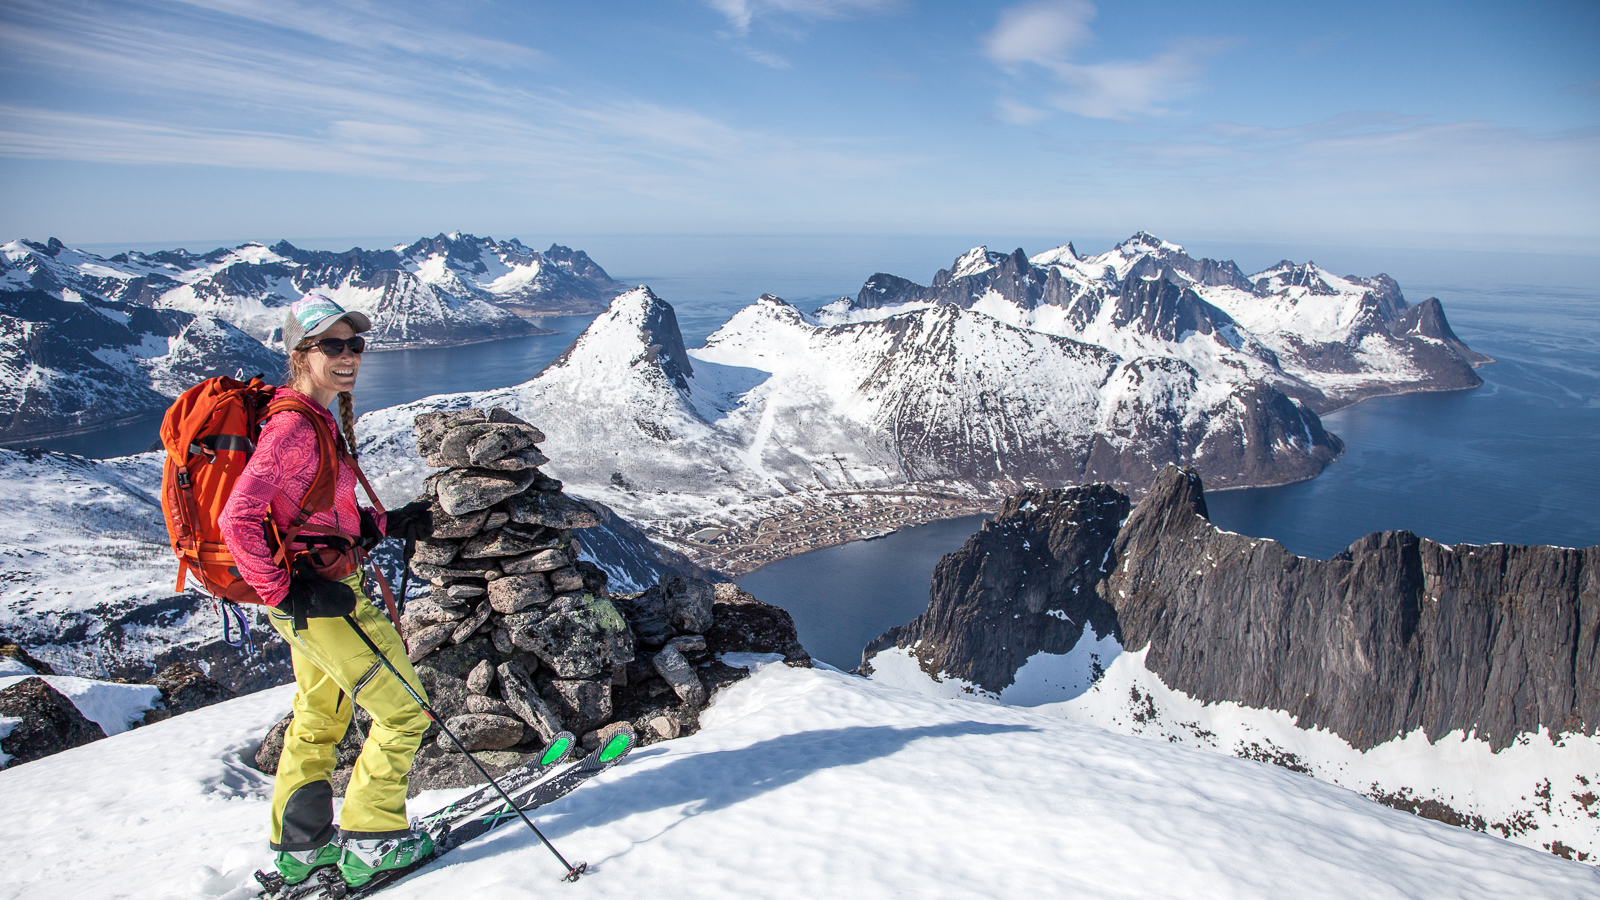 Christy Mahon skiing in Norway